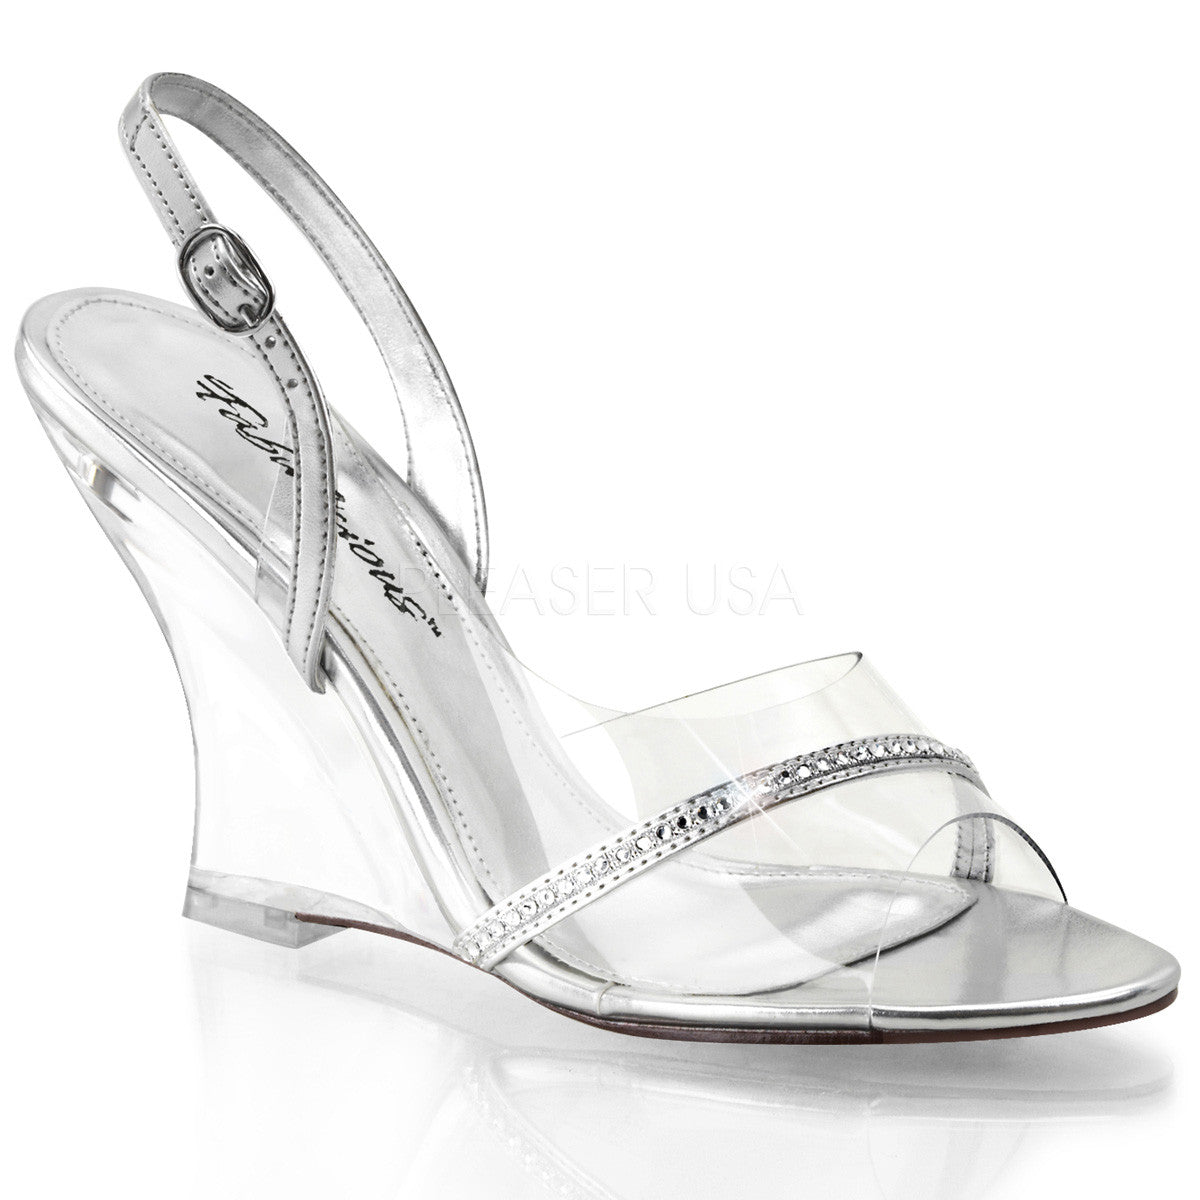 FABULICIOUS LOVELY-456 Clear-Silver Metallic Pu-Clear Ankle Strap Wedges - Shoecup.com